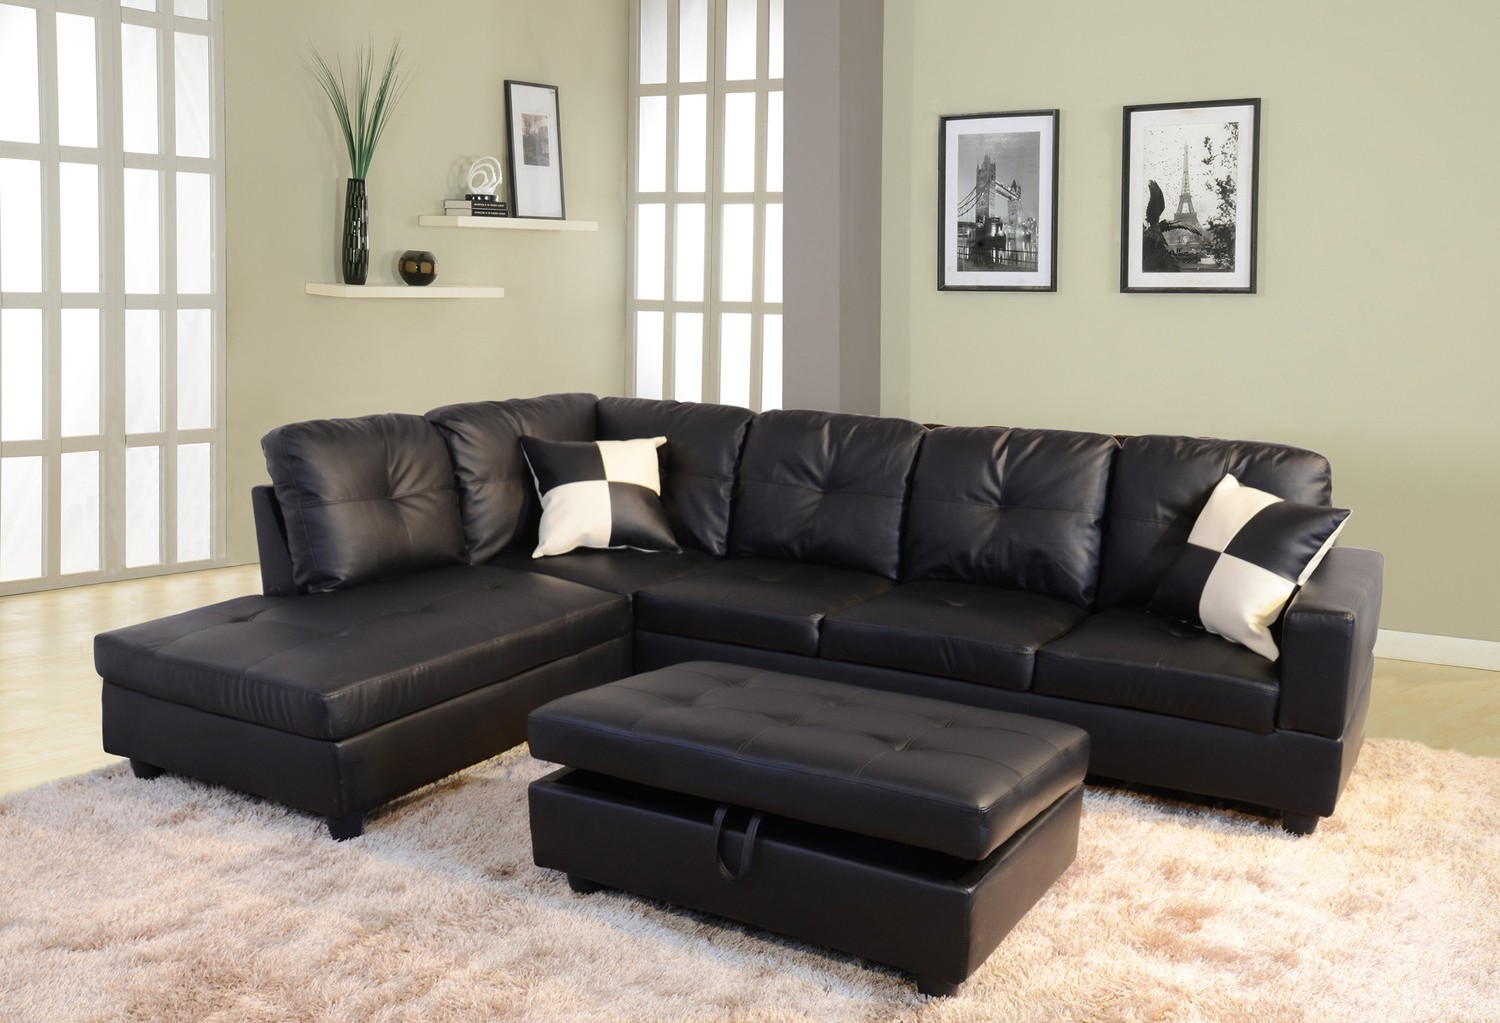 Living Room with Sectional Sofa - Perfect Ideas - HomesFeed